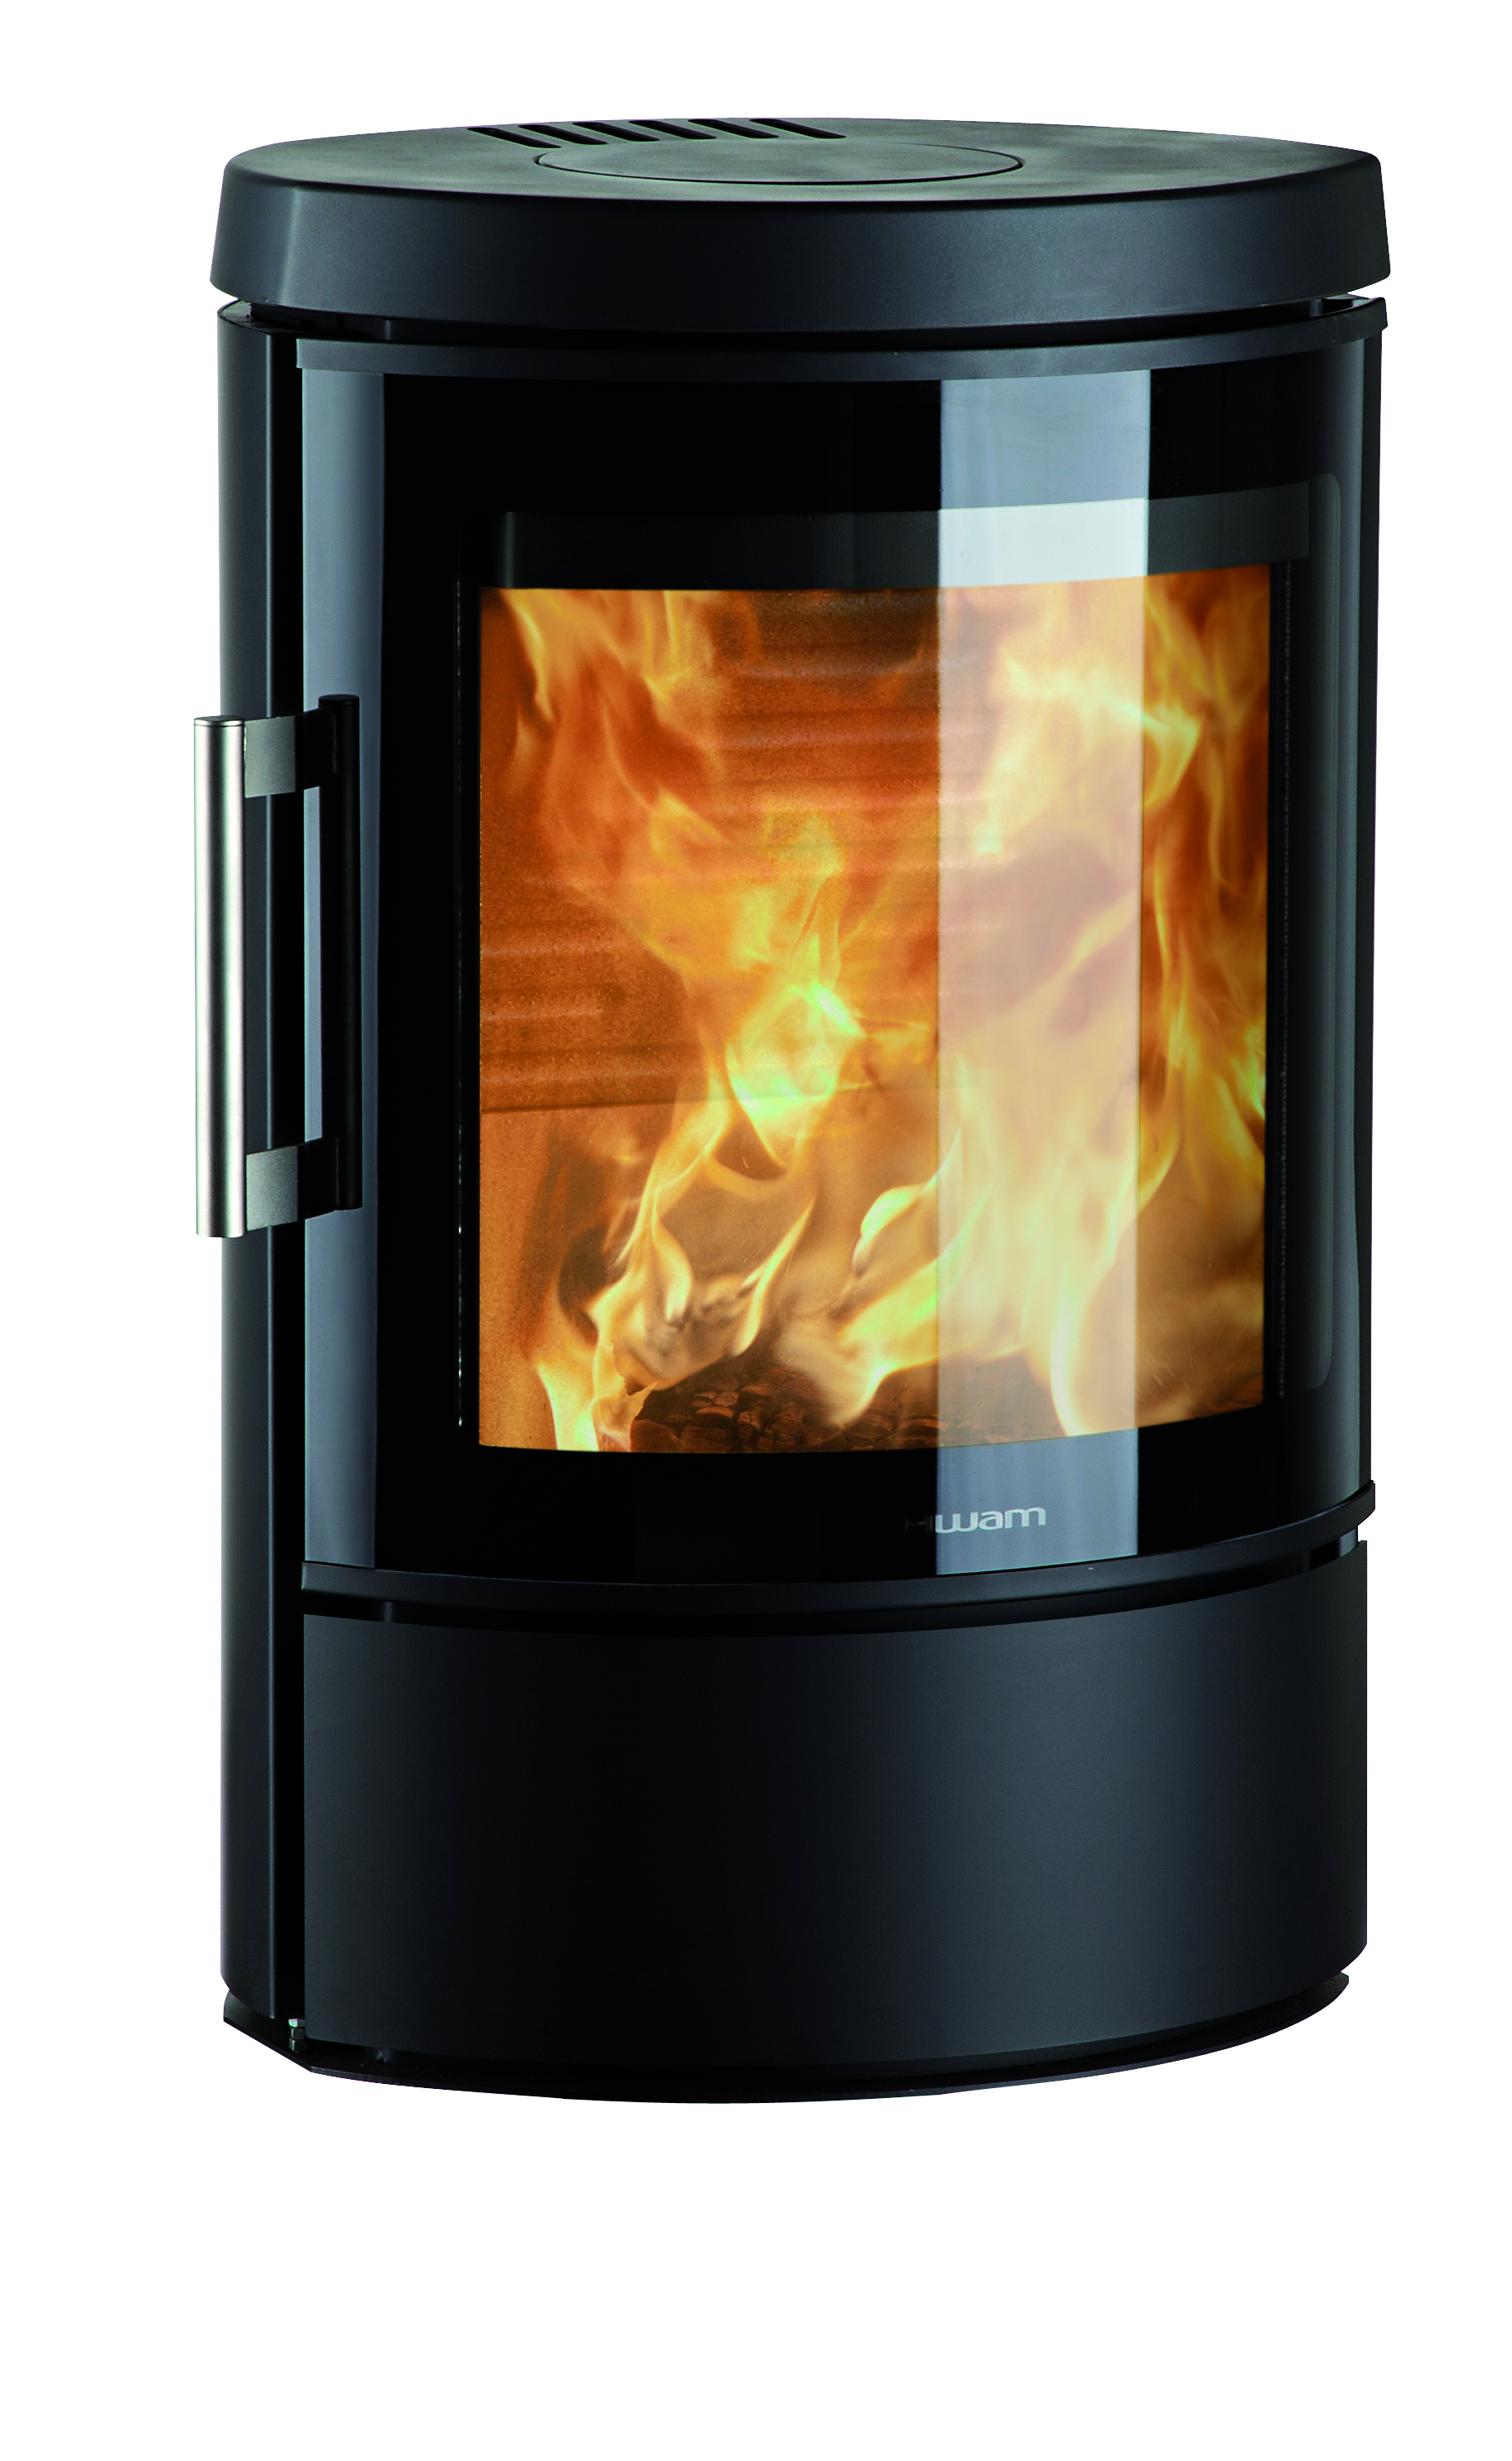 Hwam 3110 Wood Stove With A Energy Rating Stoves More In North